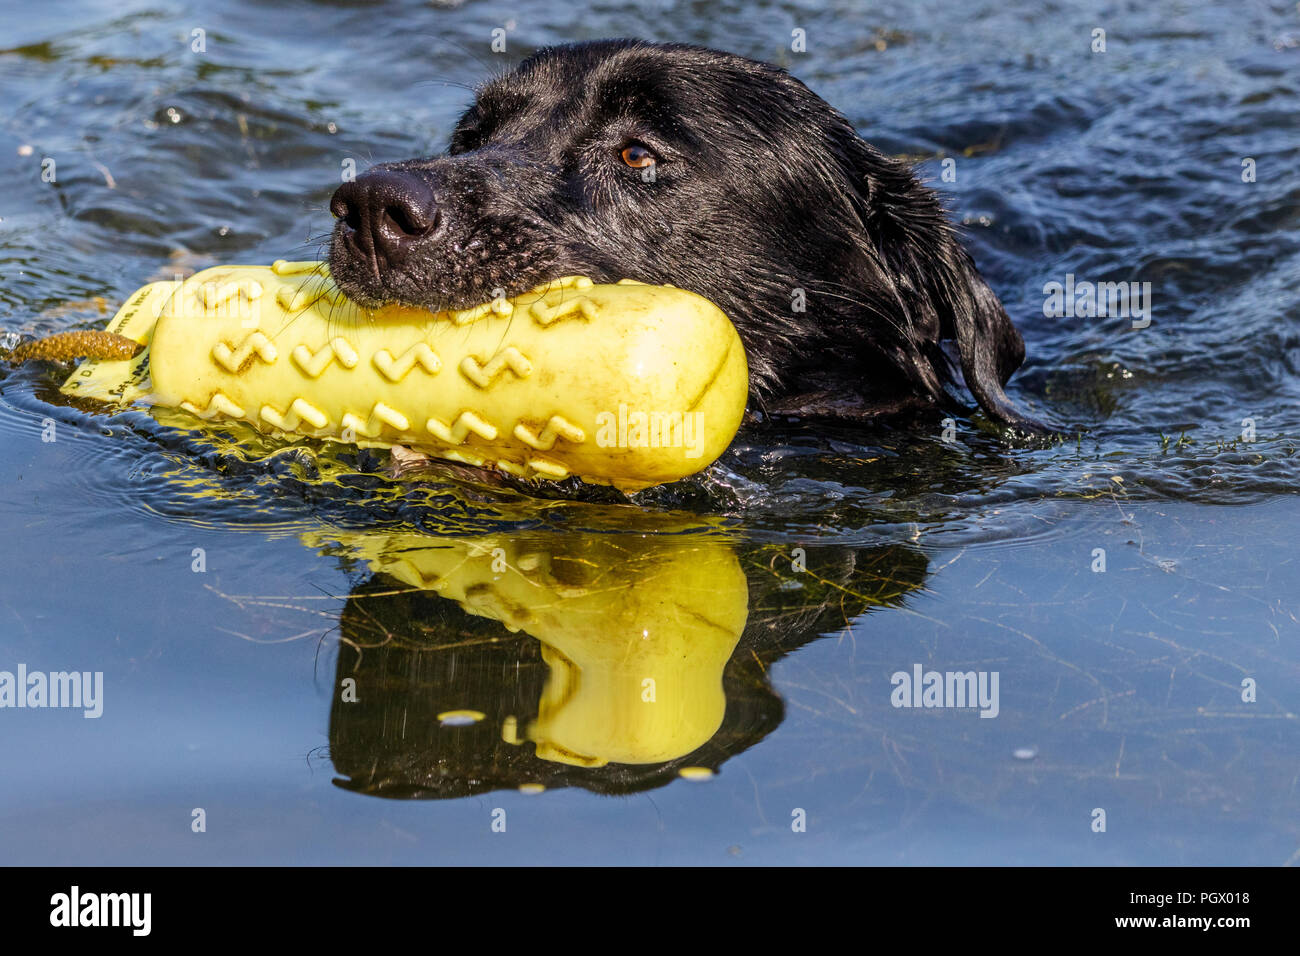 A black labrador swims with a gundog dummy in his mouth. - Stock Image